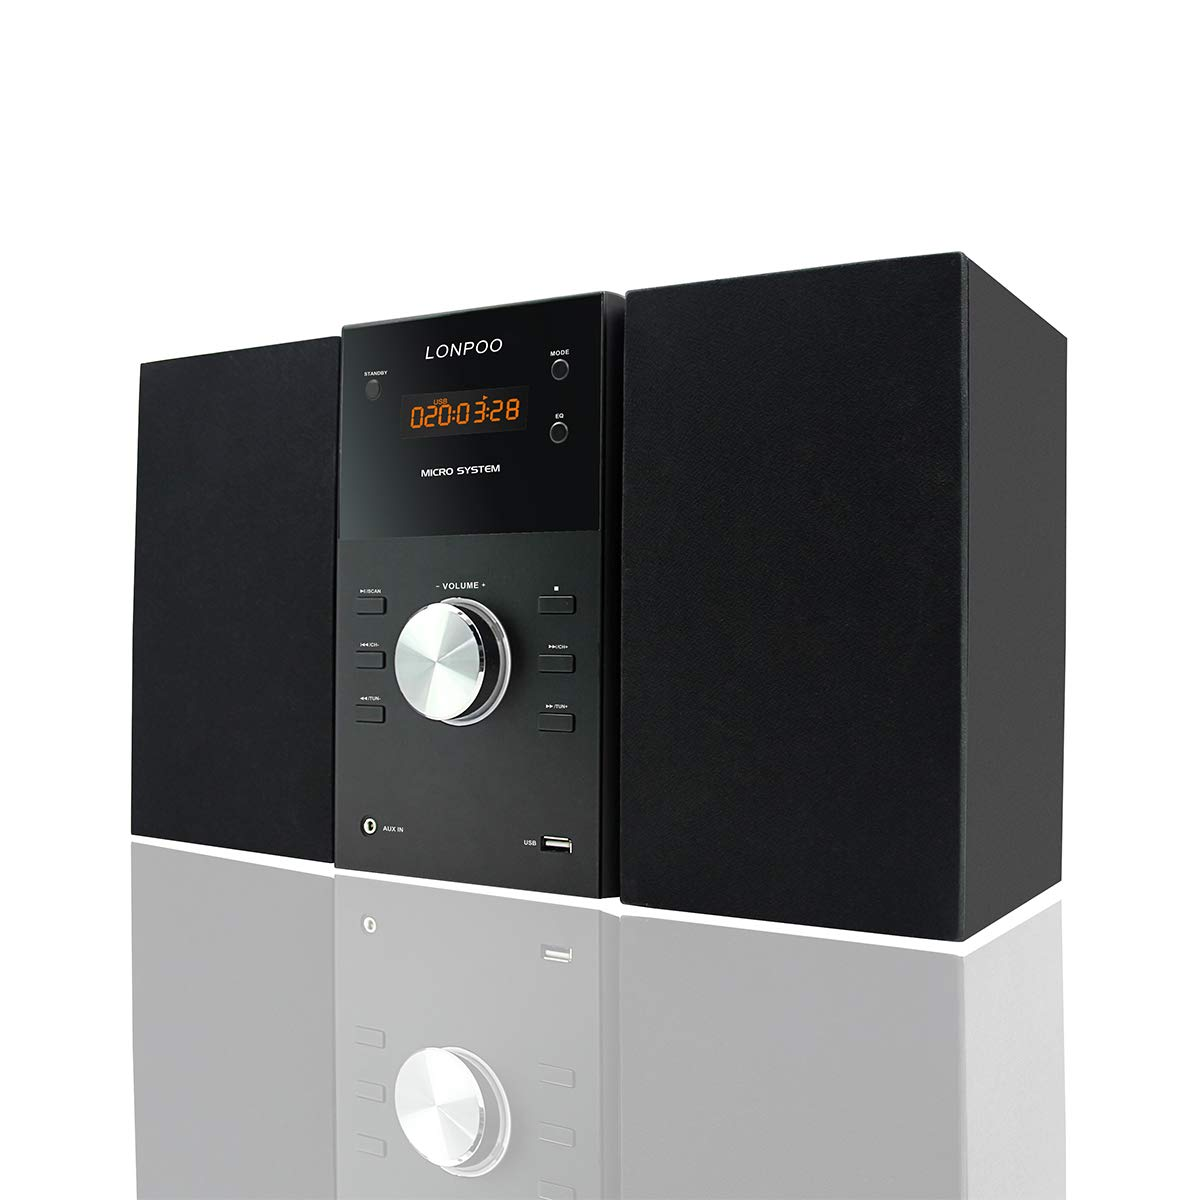 LONPOO Micro Hi-Fi CD Sound System Player 30W RMS Compact Stereo Audio Speaker with Remote Control, Bluetooth, FM Radio, USB MP3 Playback & Aux-in, Black by LONPOO